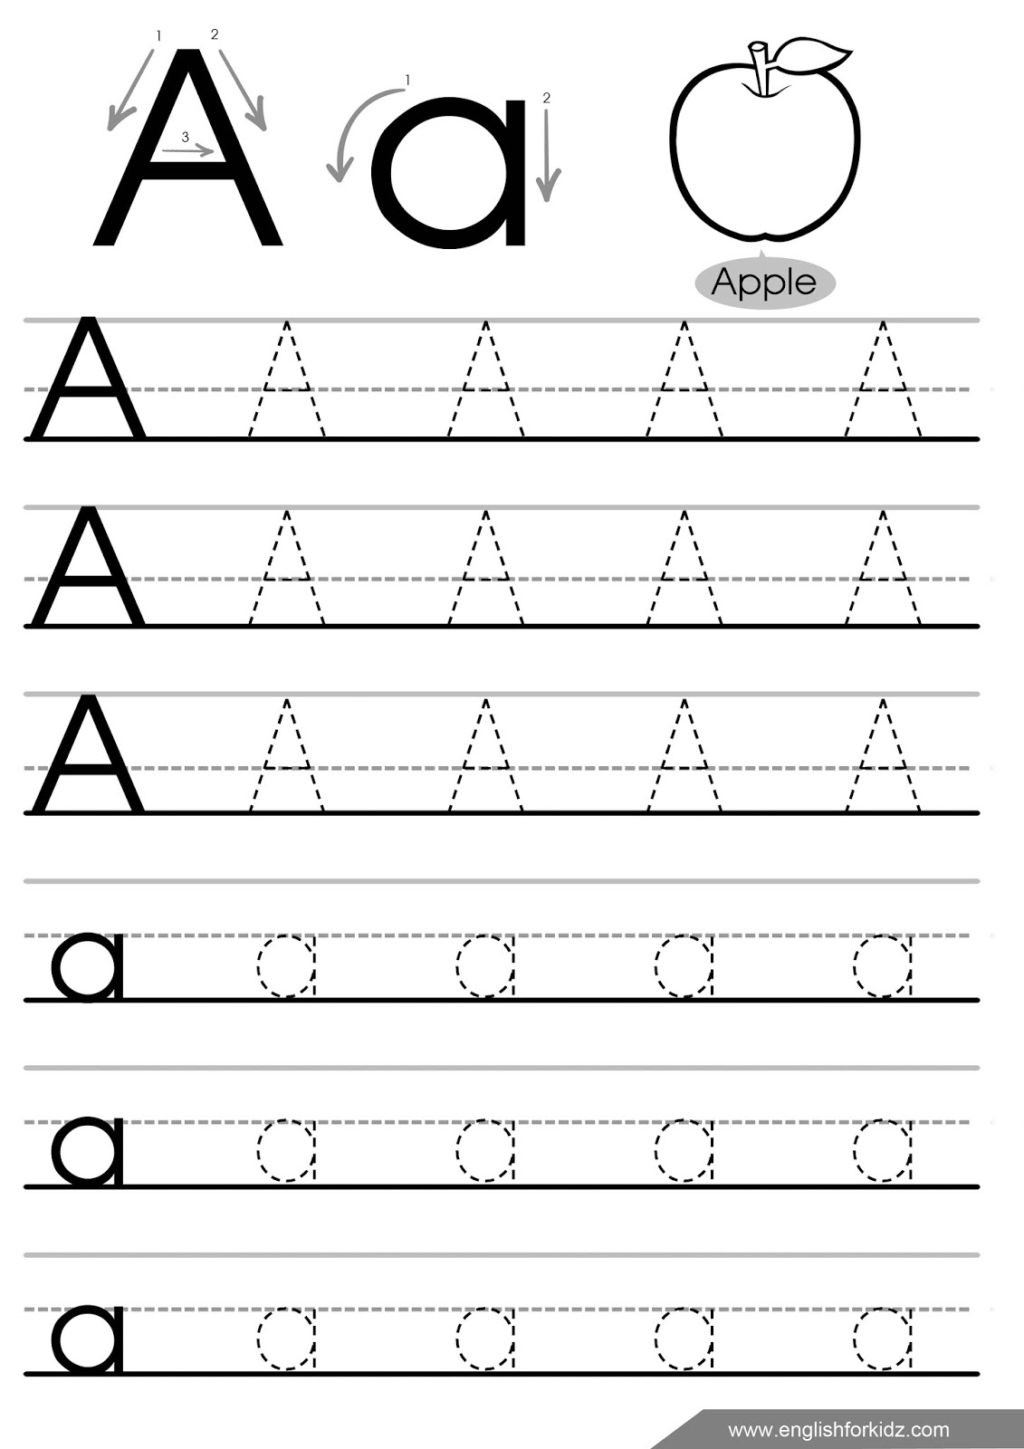 Alphabet Tracing Worksheets for Preschool Math Worksheet Alphabet Tracing Worksheets for